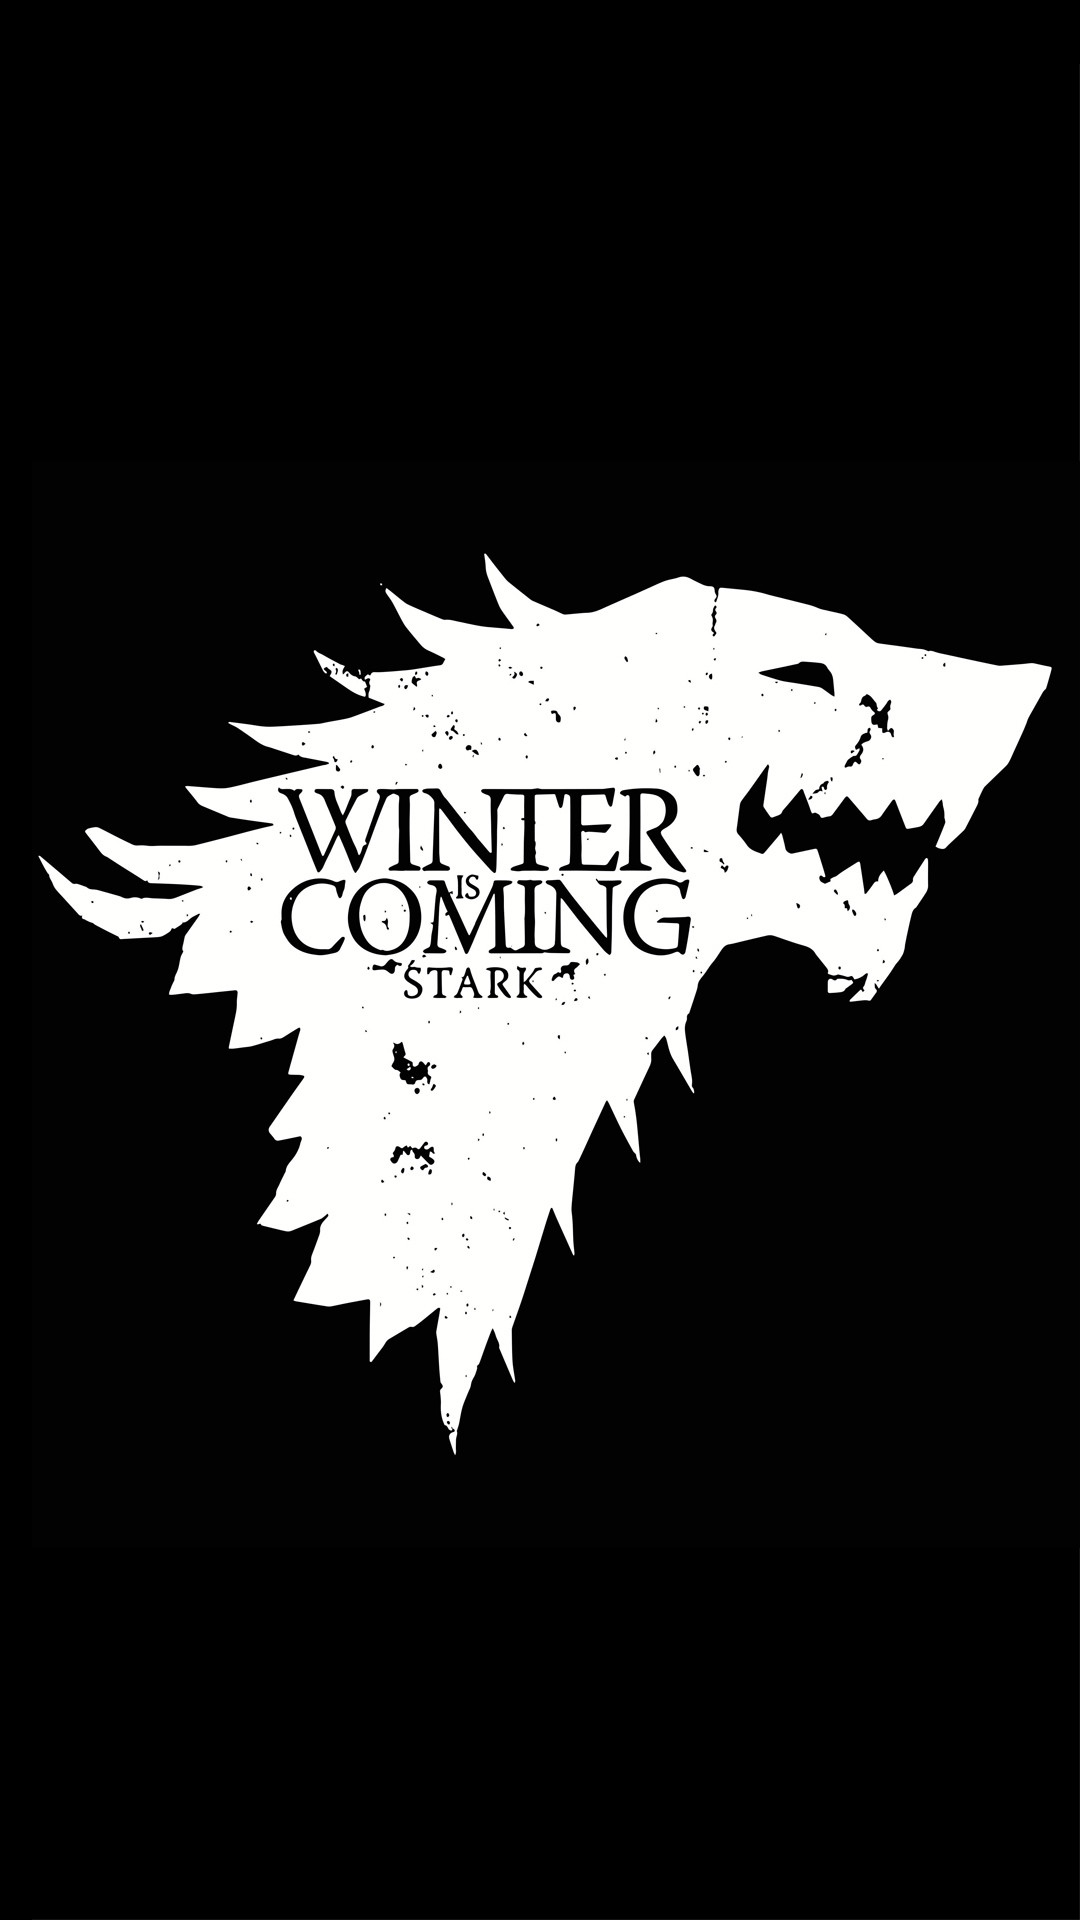 Game of Thrones Wallpapers | Game of Thrones | Pinterest | George rr  martin, Gaming and Book presentation